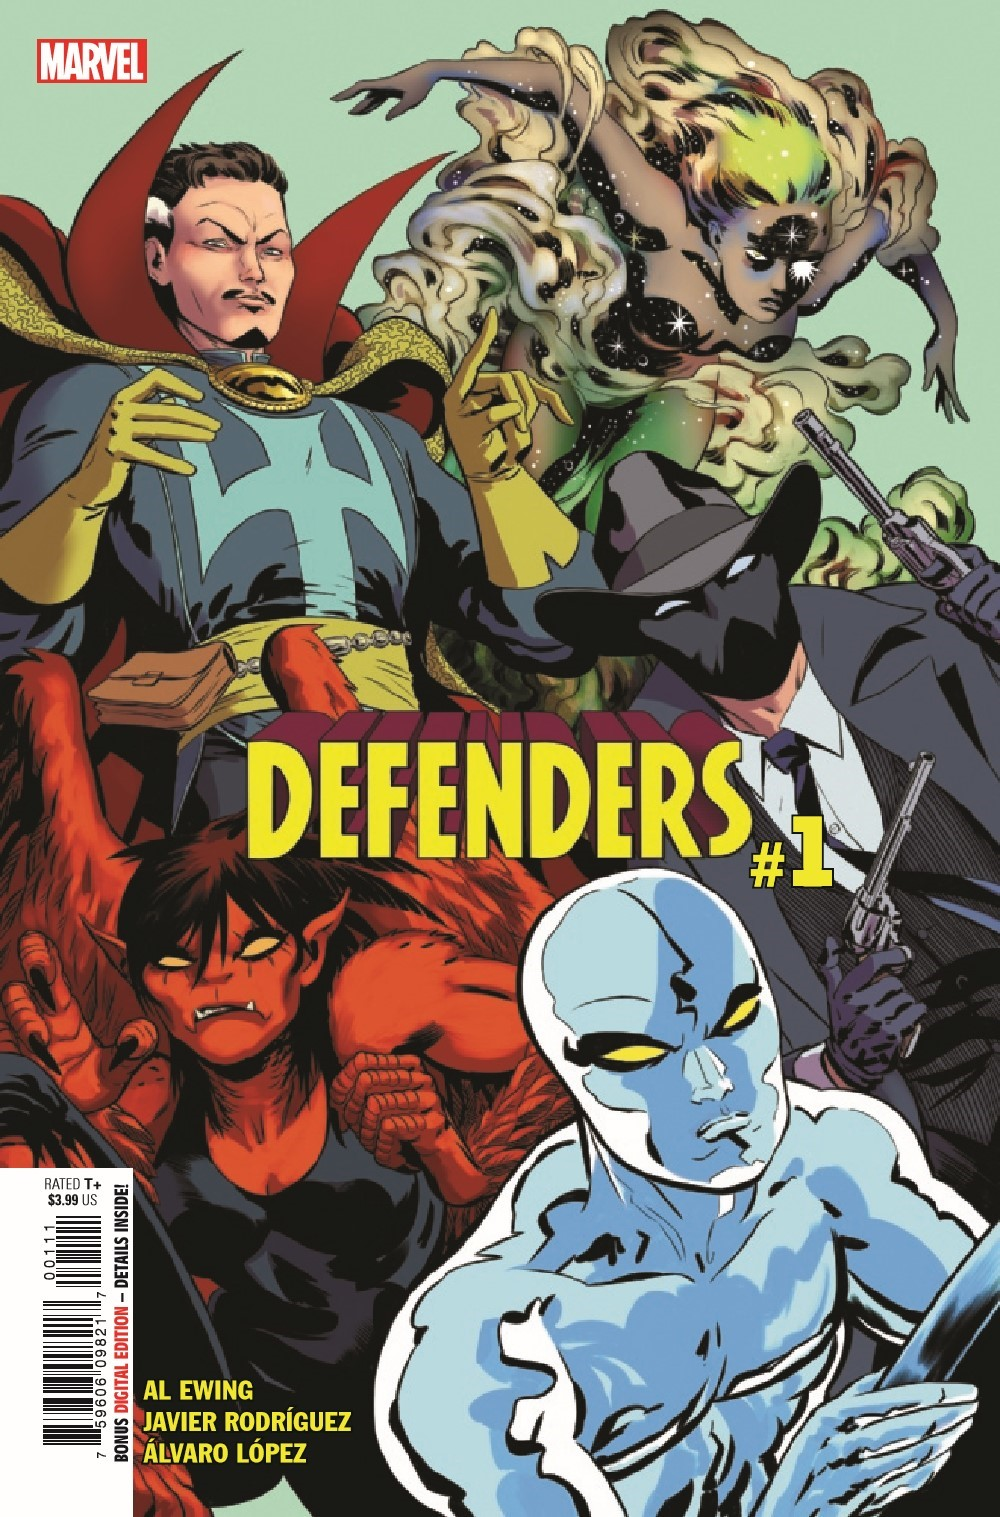 DEFEND2021001_Preview-1 ComicList Previews: DEFENDERS #1 (OF 5)